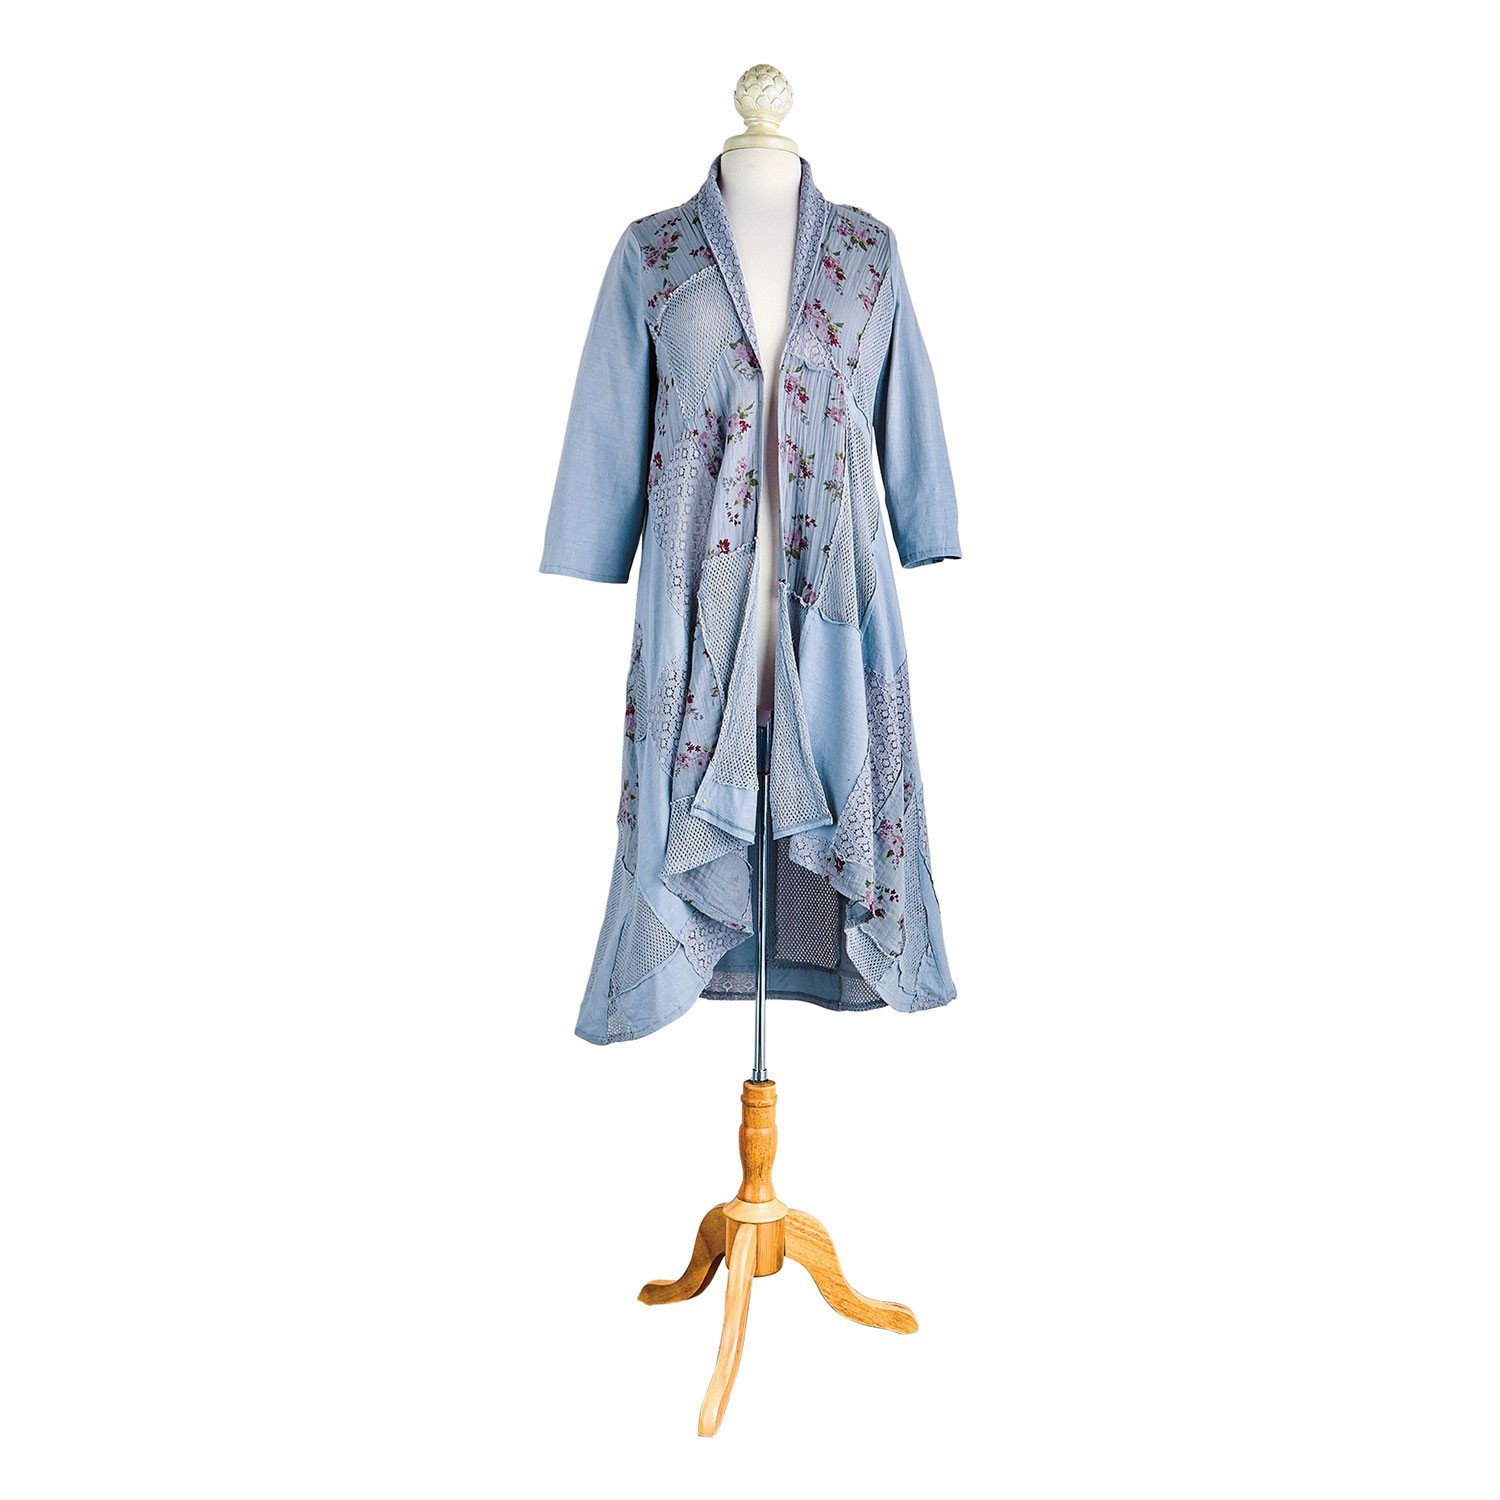 43b5748fe5 CATALOG CLASSICS Women s Long Fashion Jacket - Open Front Duster with 3 4  Sleeves - Blue - Small at Amazon Women s Clothing store